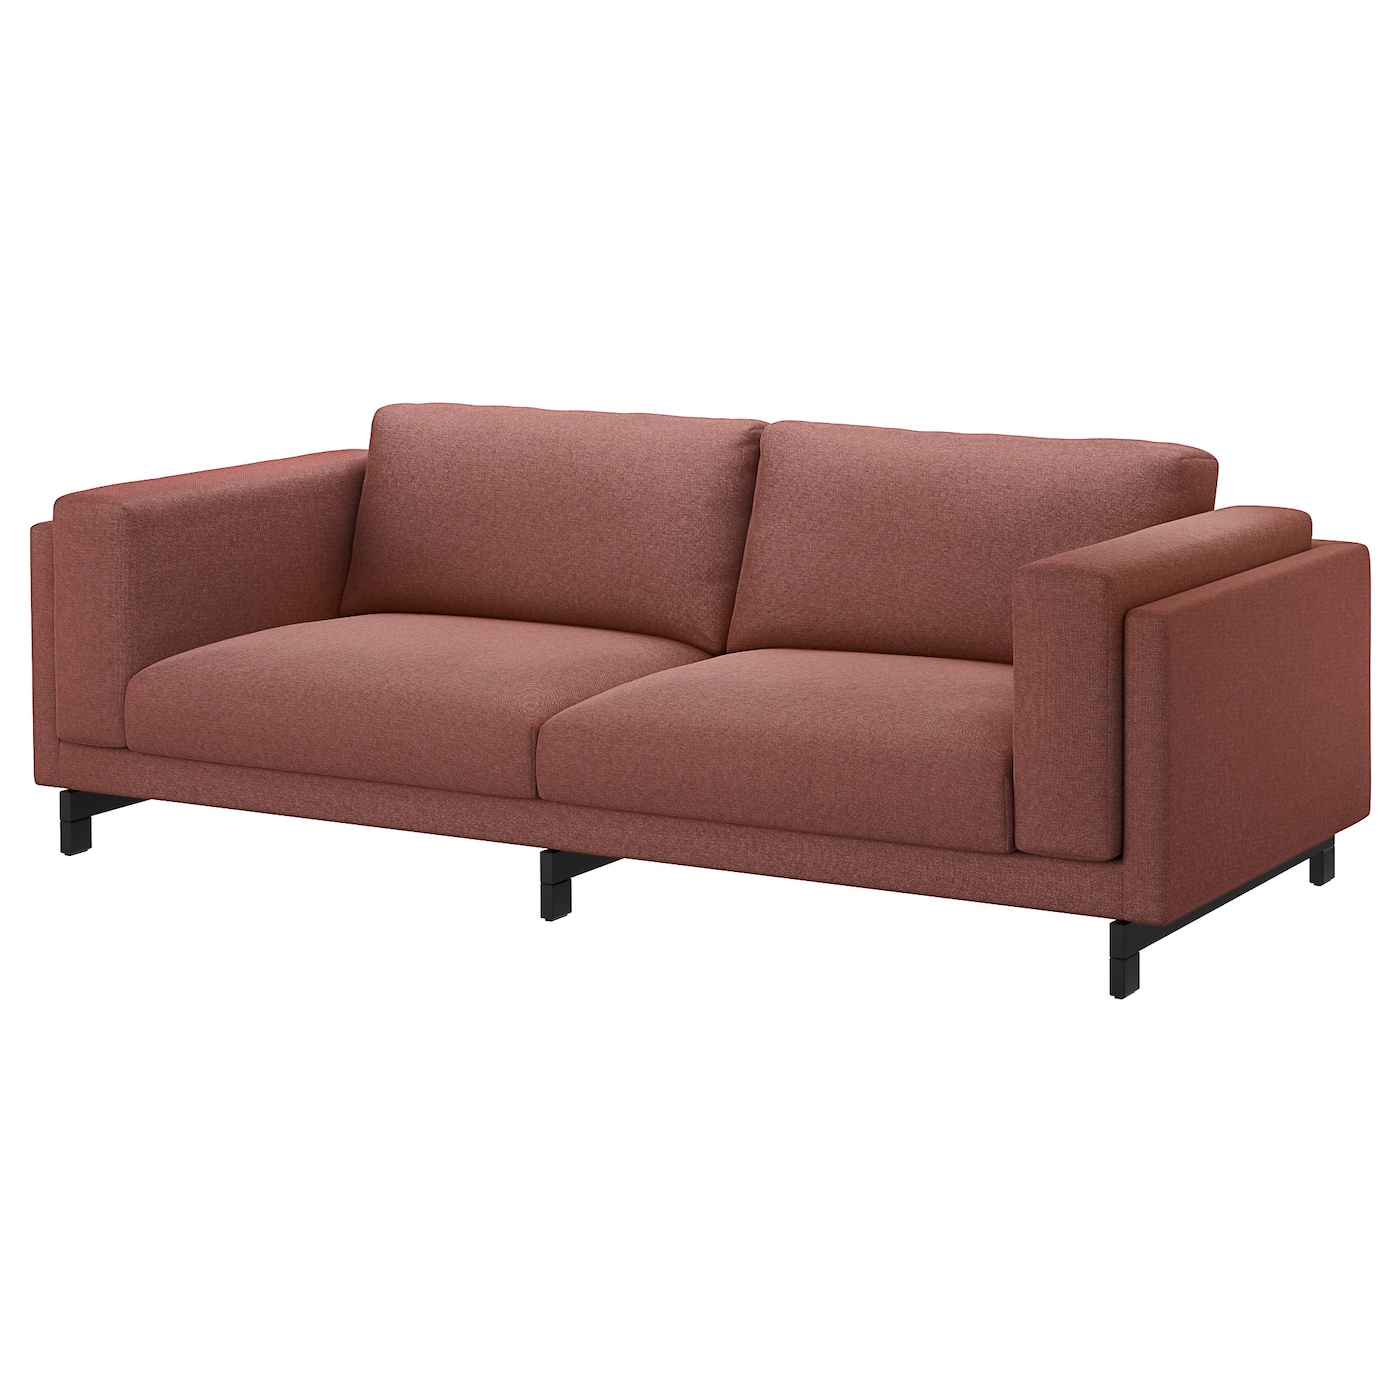 Ikea Nockeby Three Seat Sofa 10 Year Guarantee Read About The Terms In